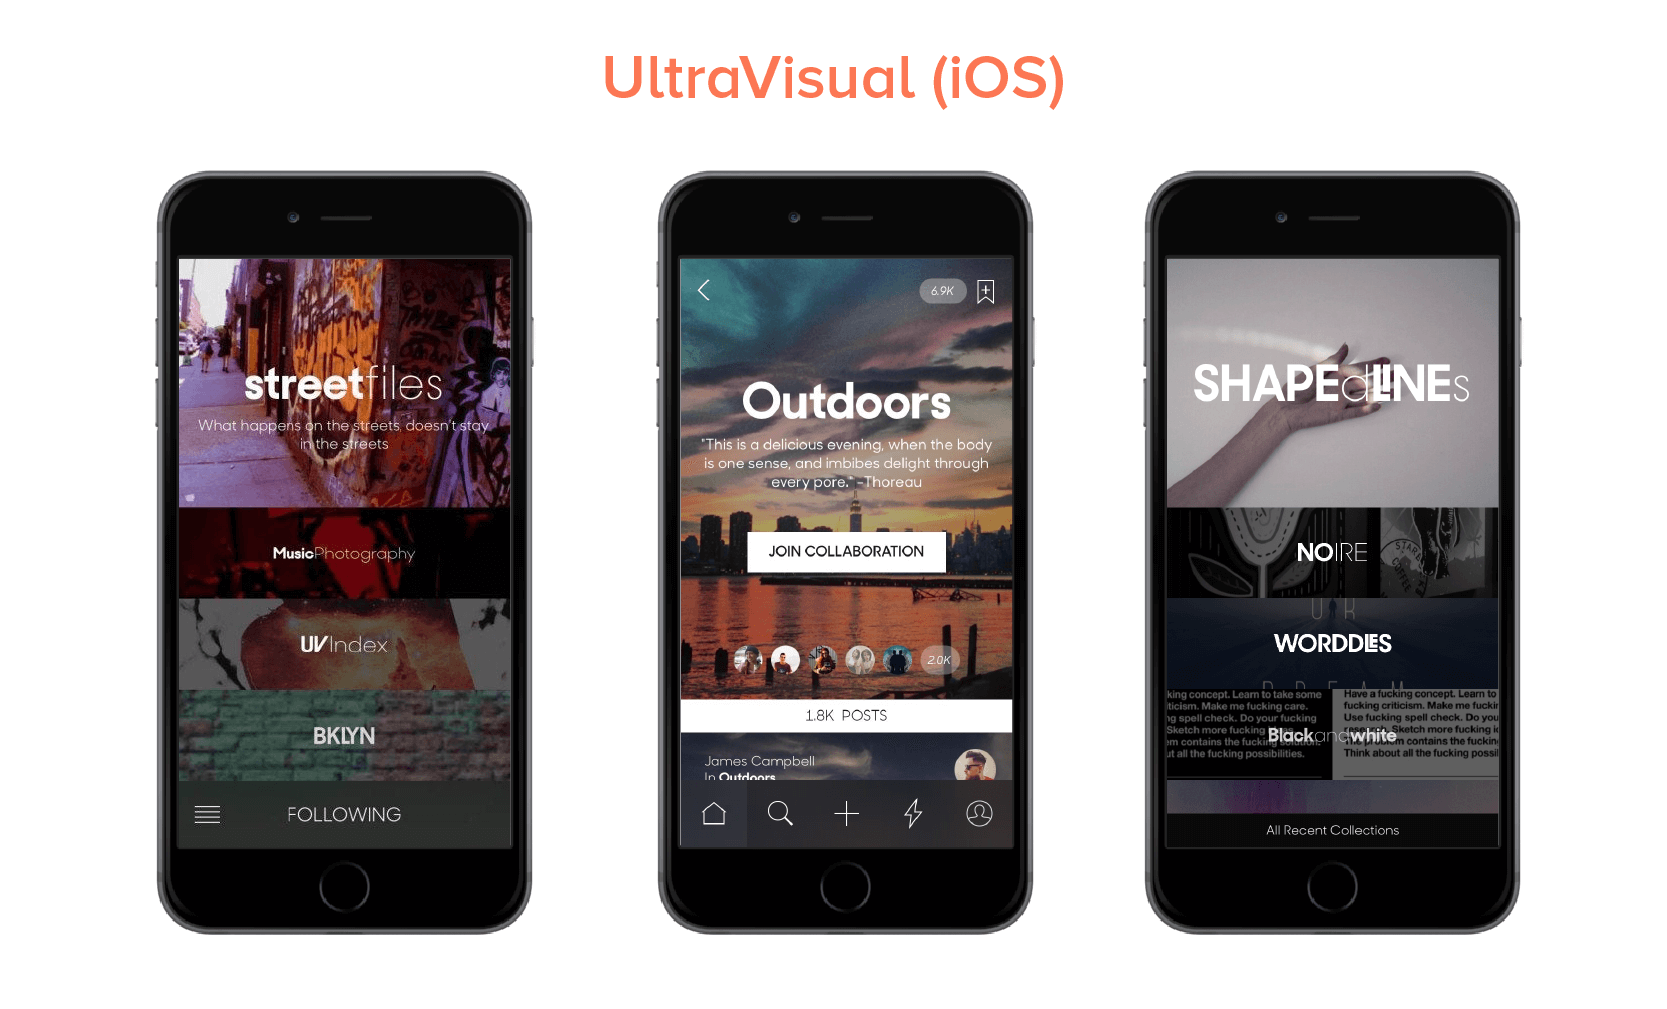 UltraVisual (iOS)